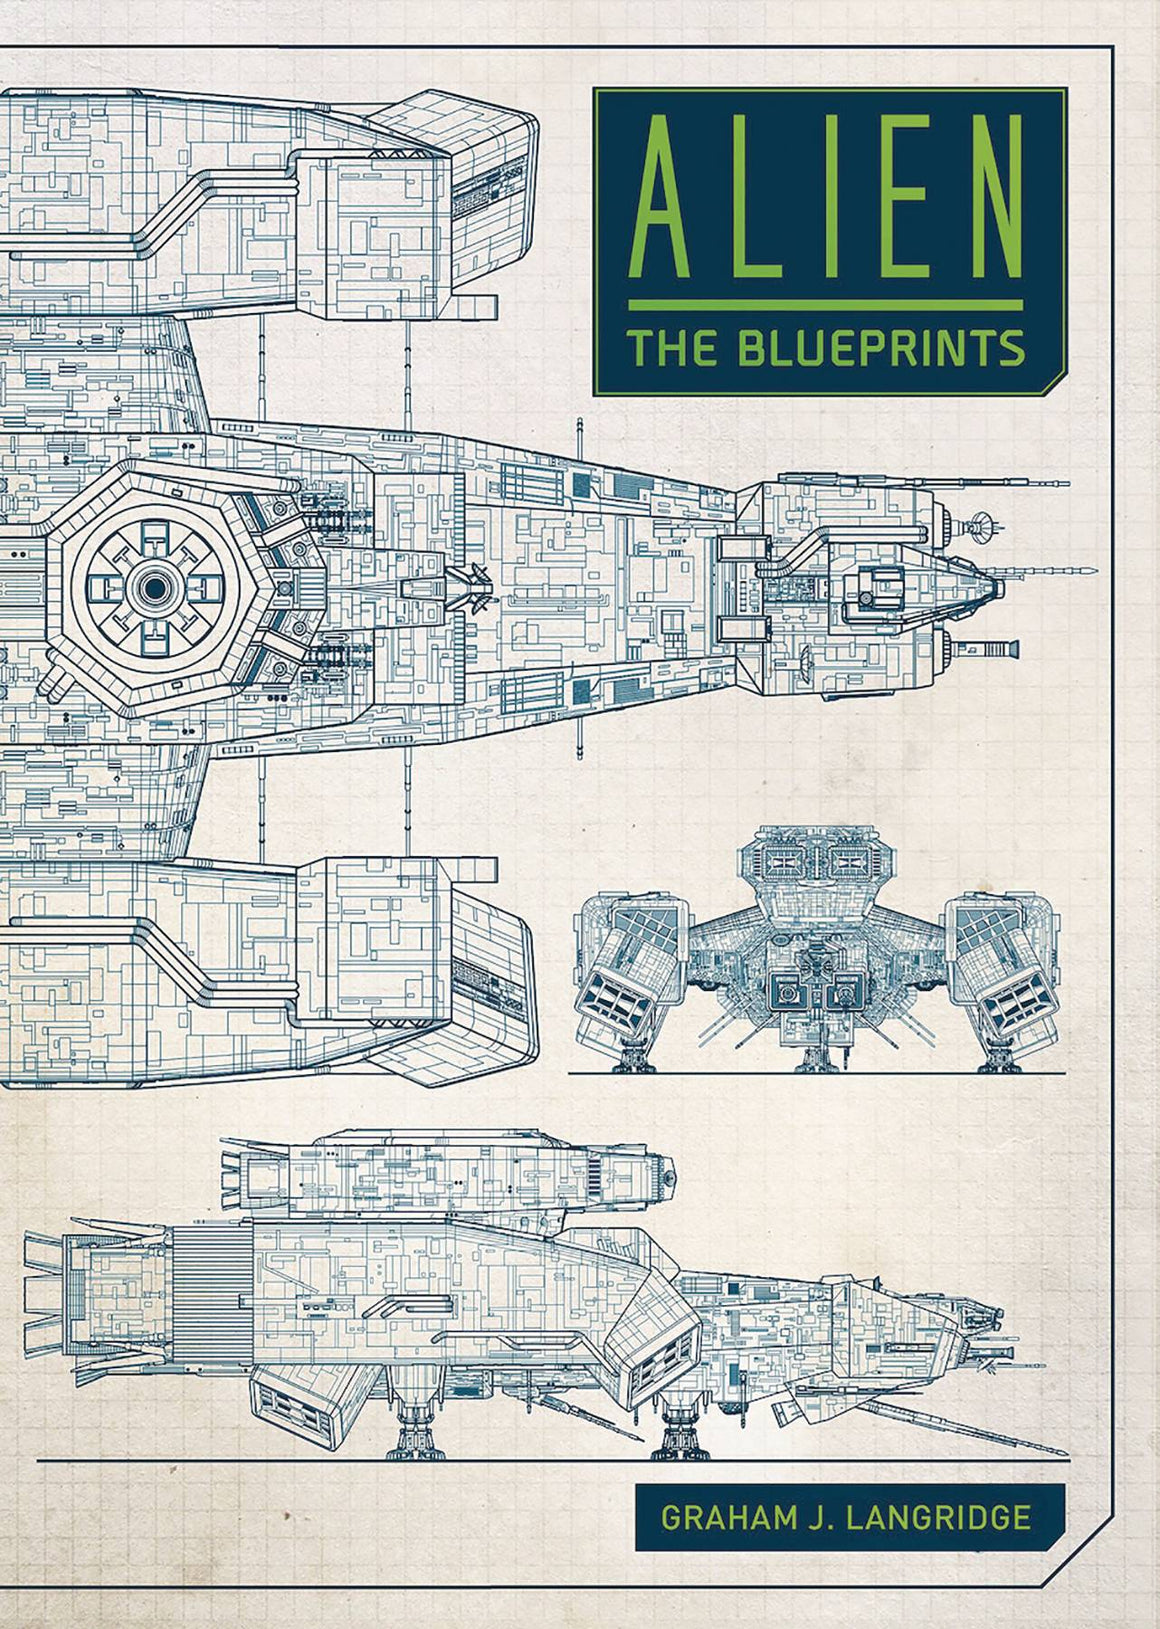 Alien Blueprints